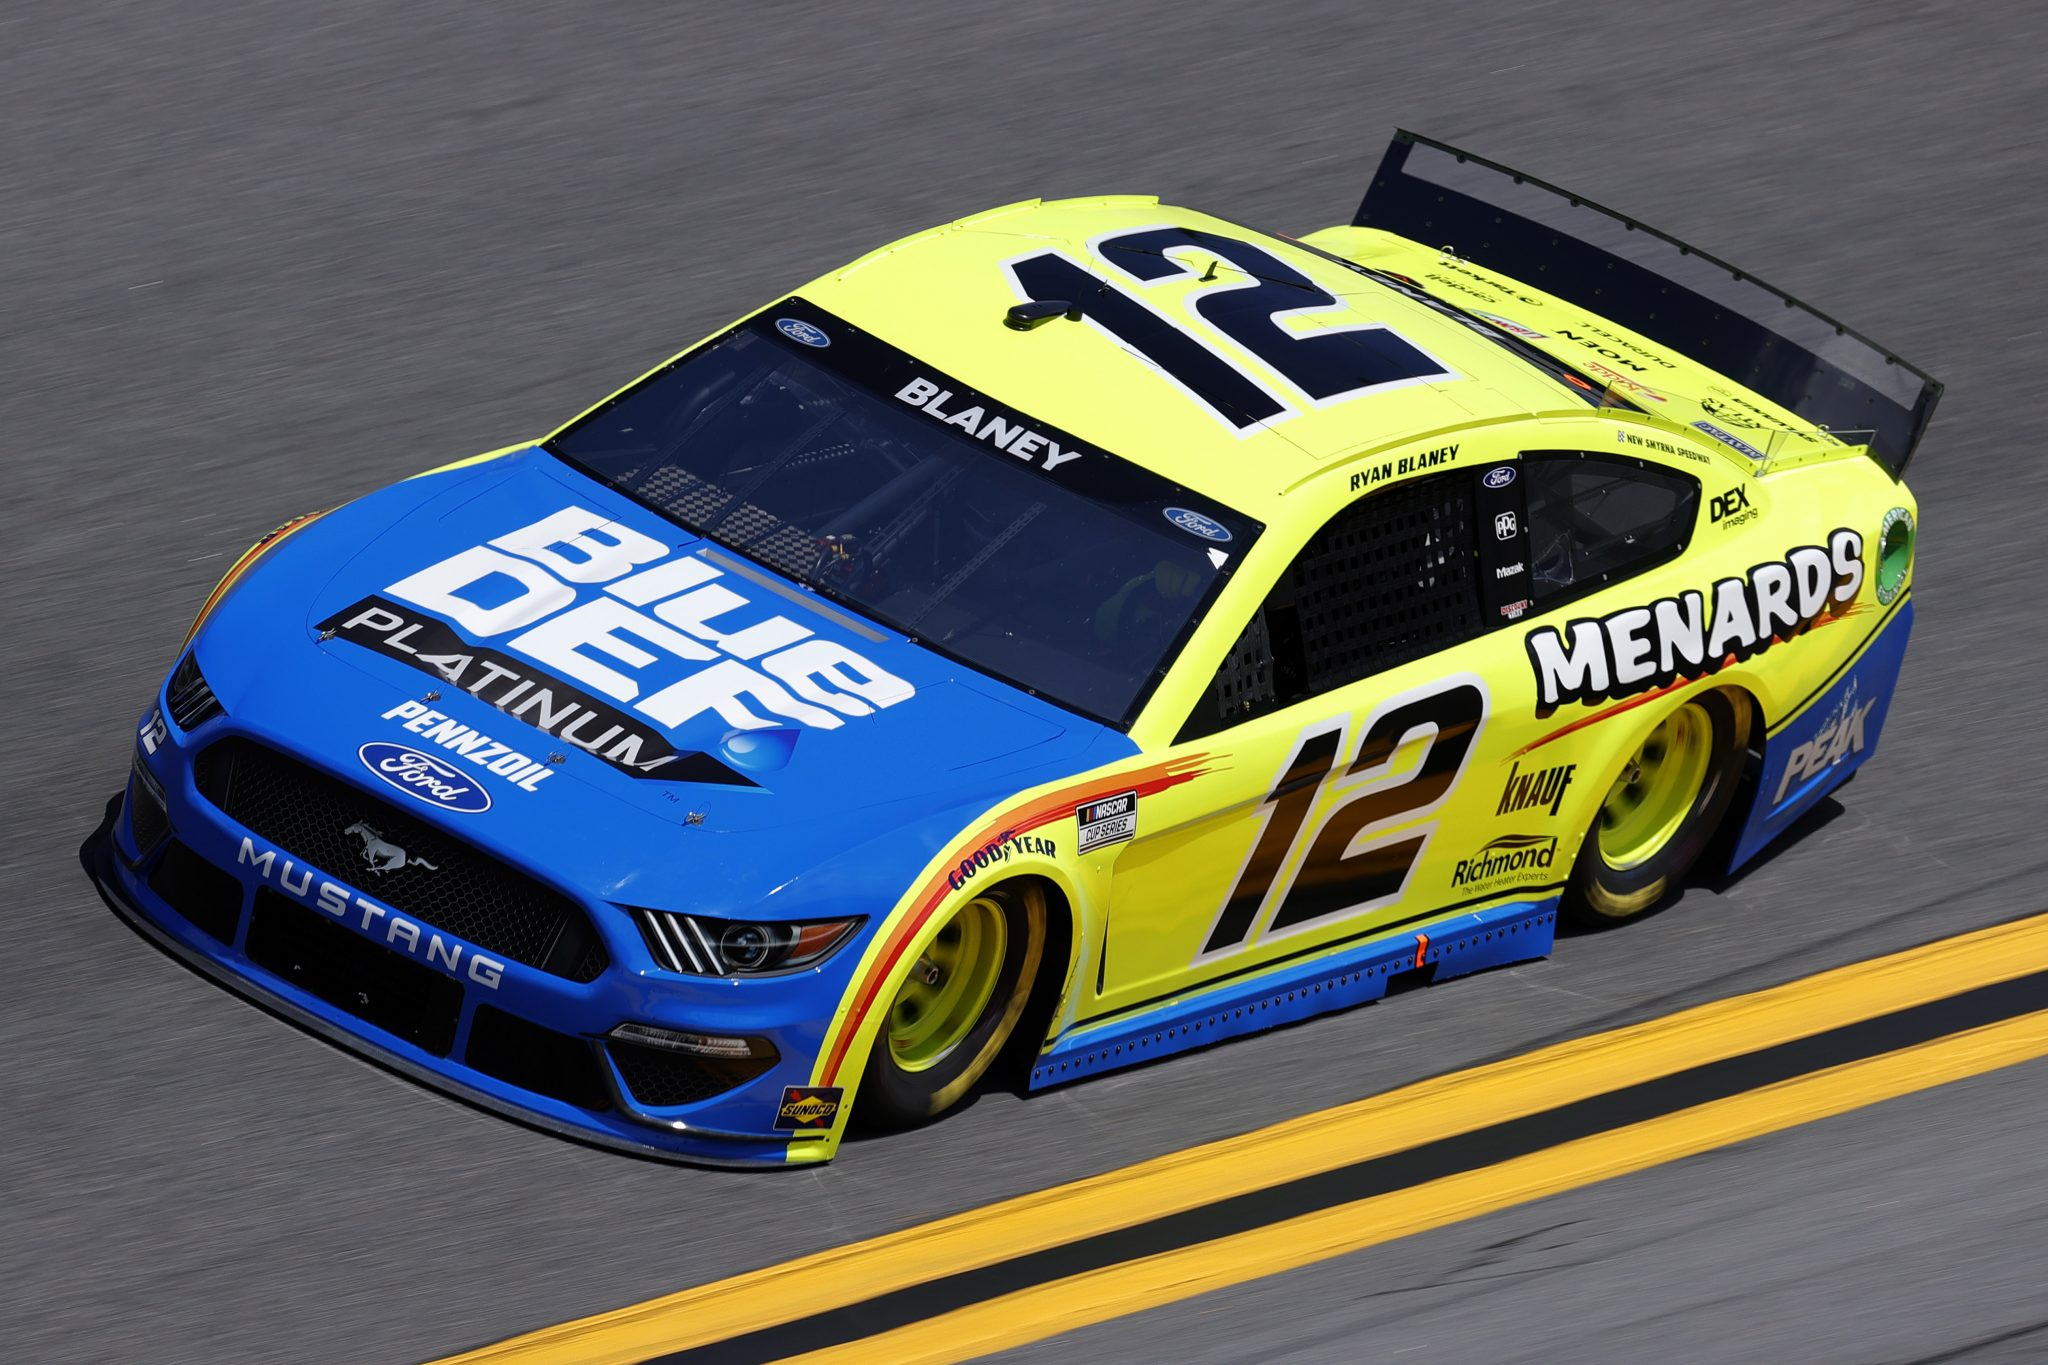 DAYTONA BEACH, FLORIDA - FEBRUARY 10: Ryan Blaney, driver of the #12 Menards/BlueDEF Ford, drives during practice for the NASCAR Cup Series 63rd Annual Daytona 500 at Daytona International Speedway on February 10, 2021 in Daytona Beach, Florida. (Photo by Jared C. Tilton/Getty Images) | Getty Images